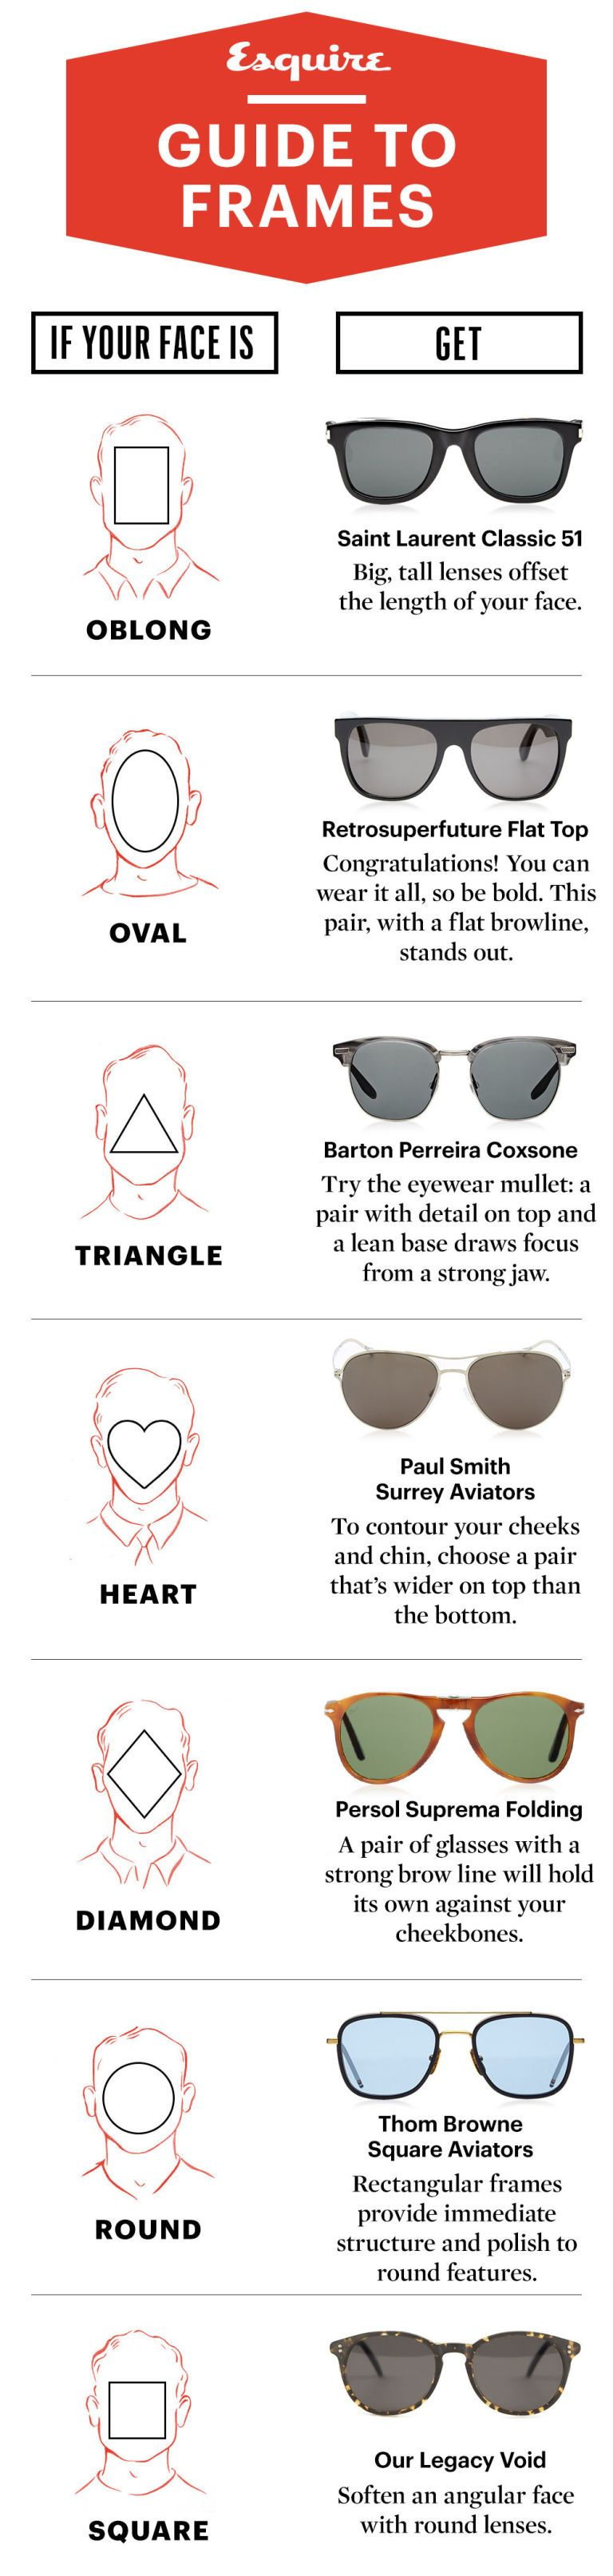 mywebroom blog esquire male fashion sunglass frame guide style infographic                                                                                                                            Más